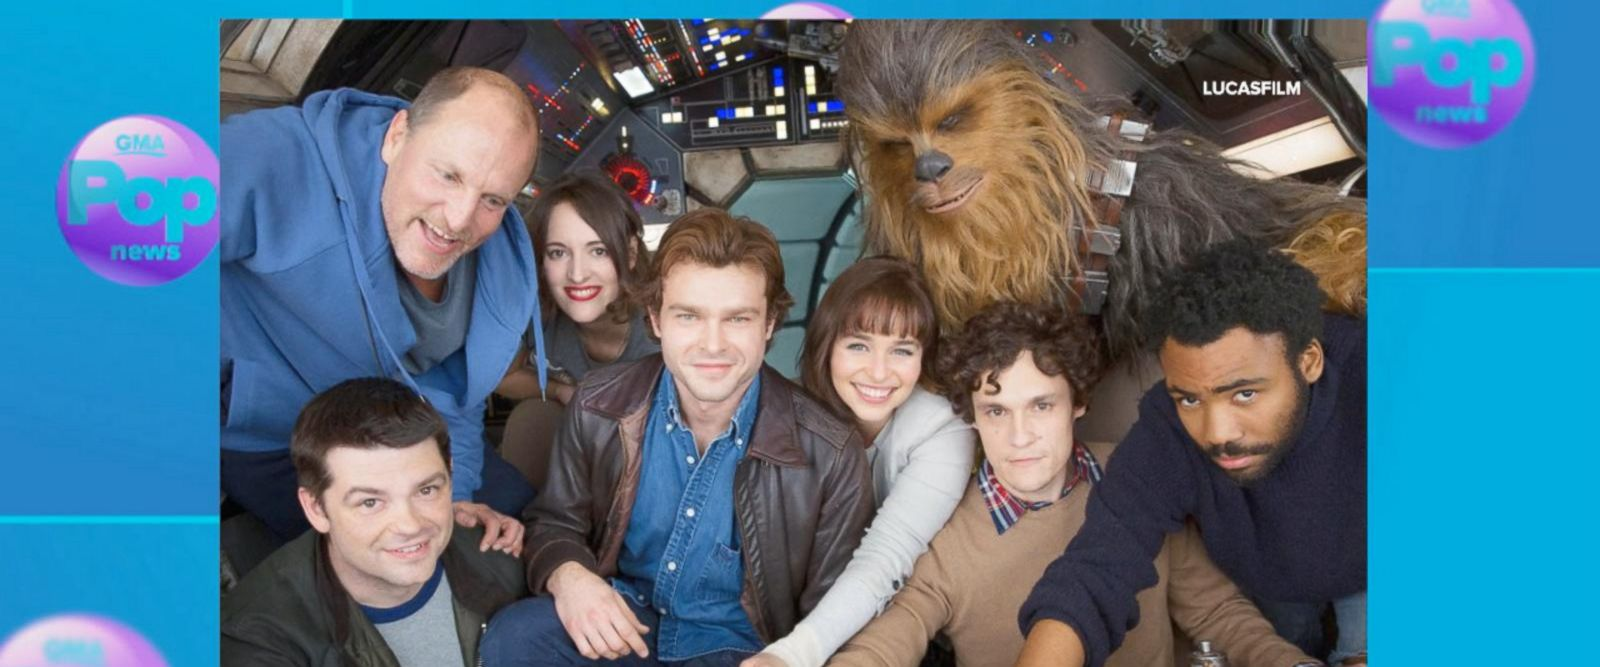 VIDEO: First Look at the new Han Solo movie